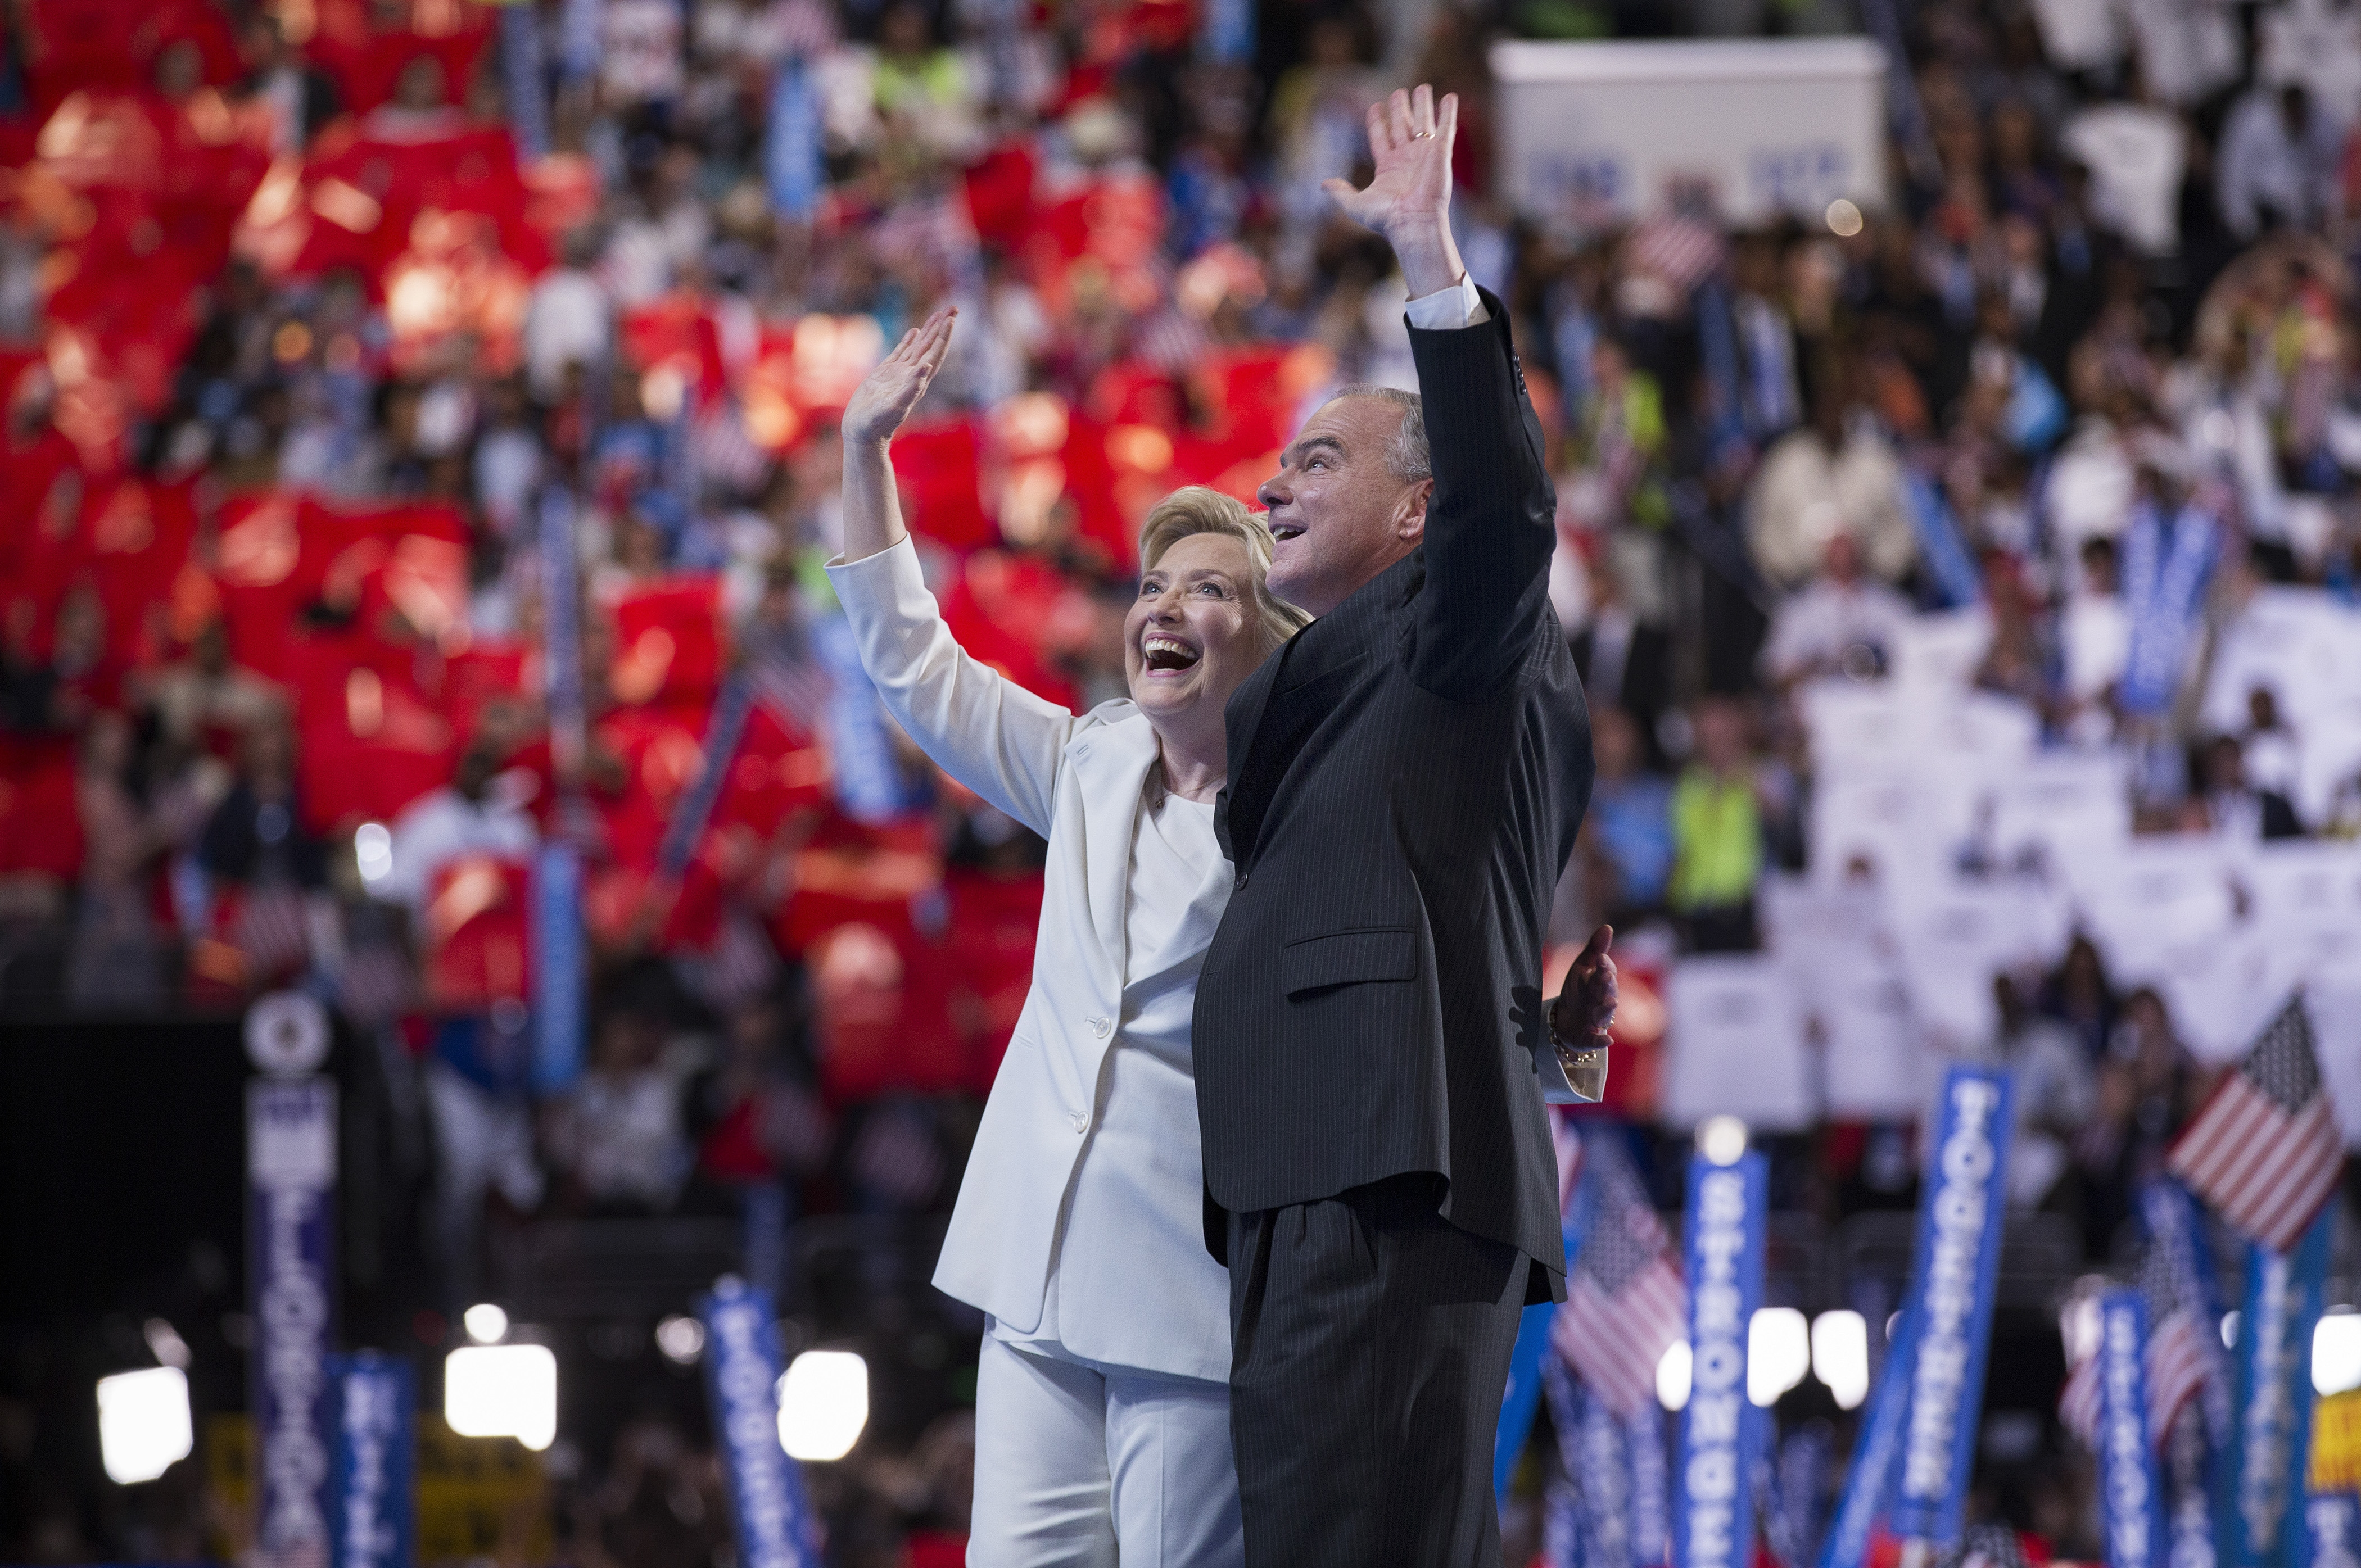 Hillary Clinton is joined on stage by Sen. Tim Kaine, her running mate, after accepting the party's presidential nomination. (New York Times)